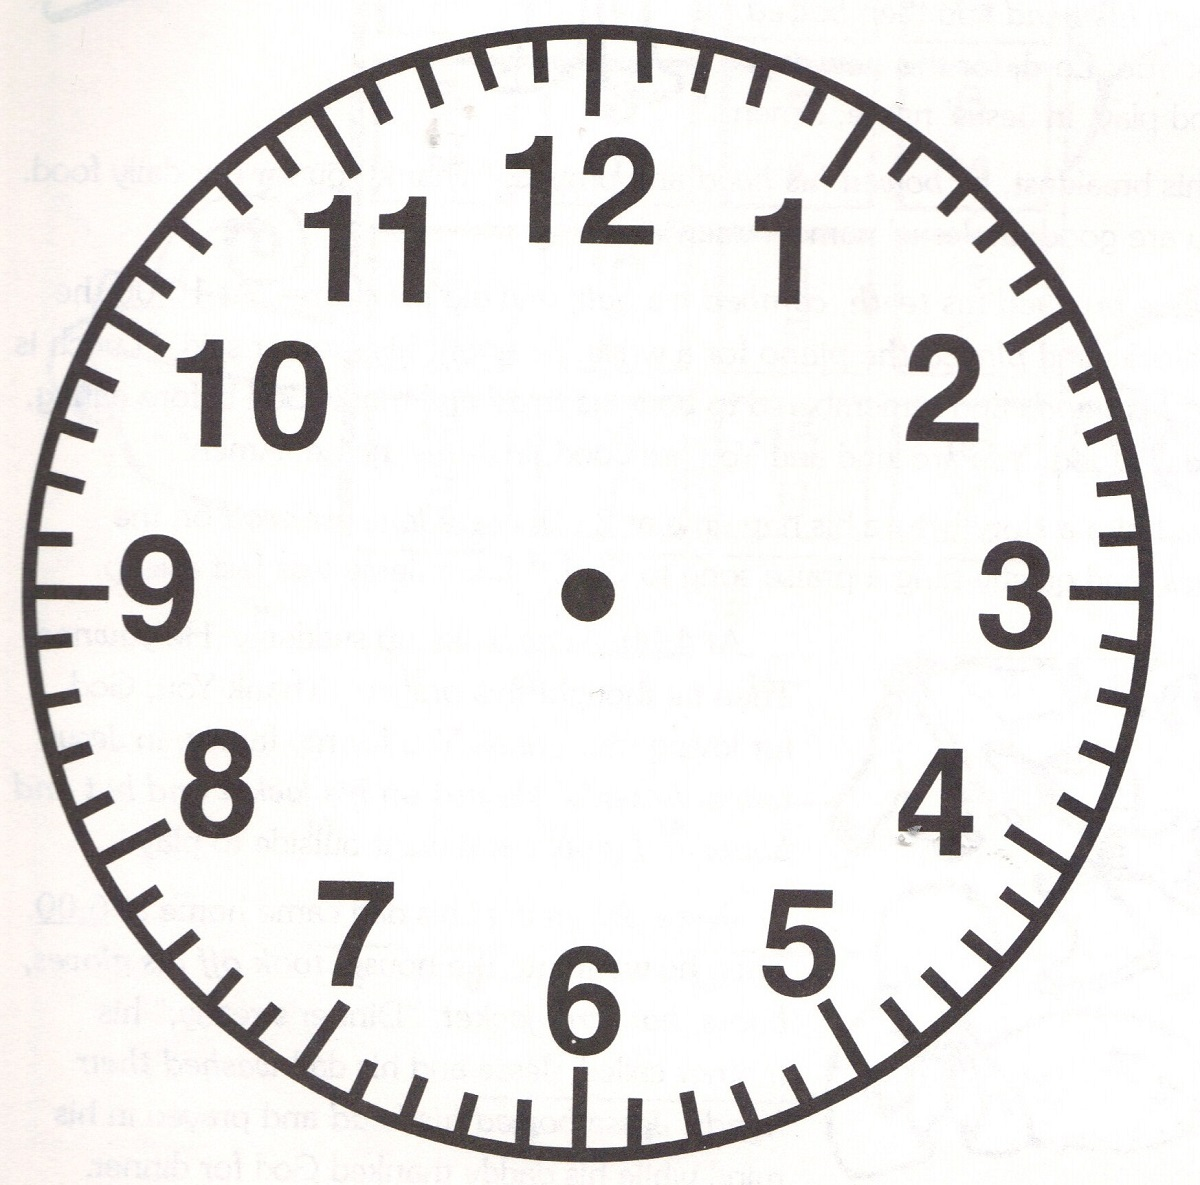 clock face image simple – Learning Printable